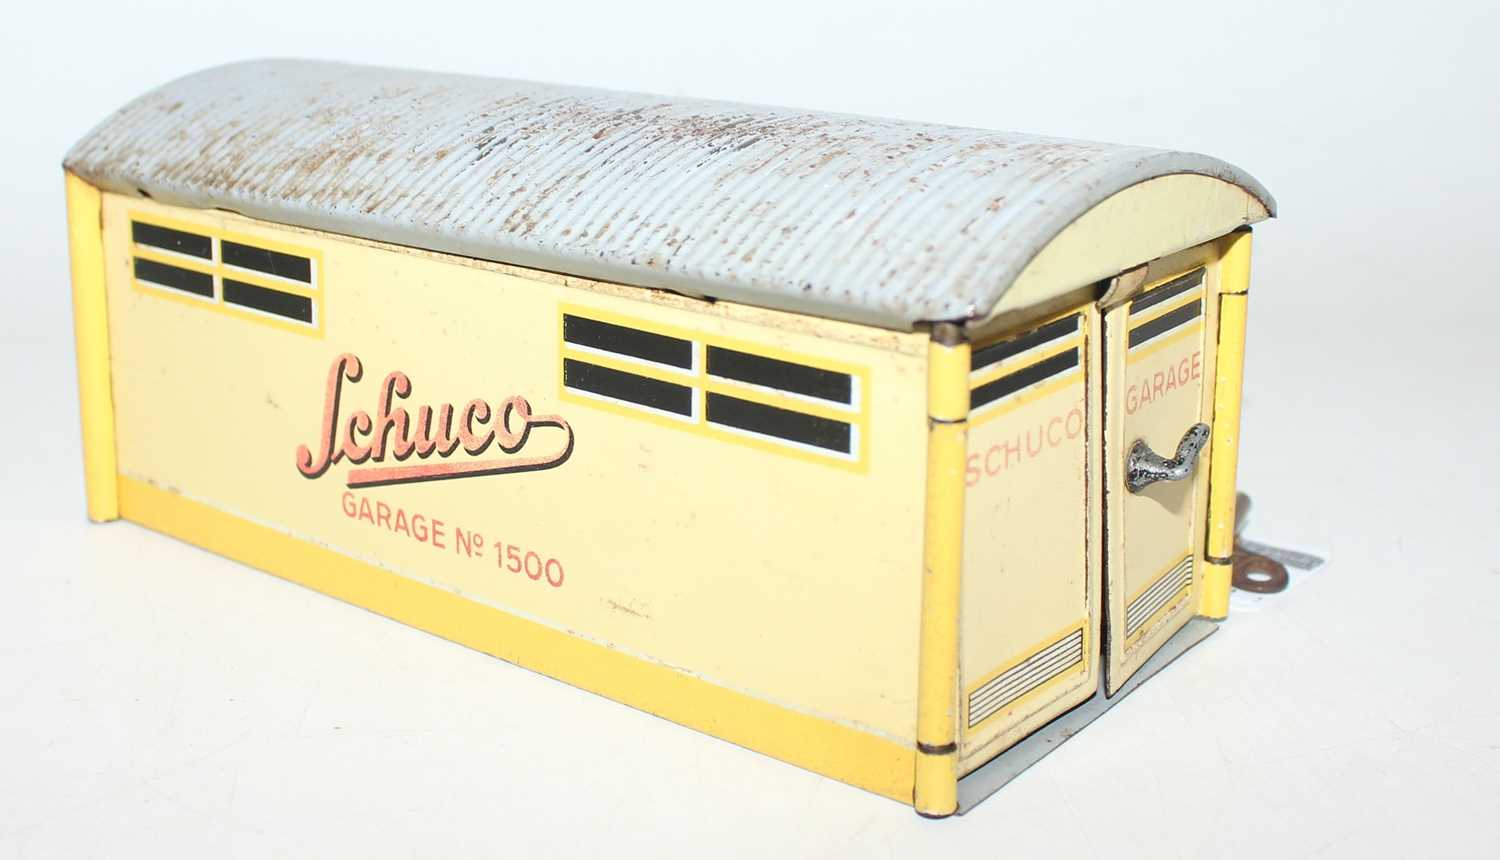 "A Schuco vintage tinplate clockwork car in a garage ""Kommando Anno 2000"" circa mid 40s complete with - Image 2 of 4"